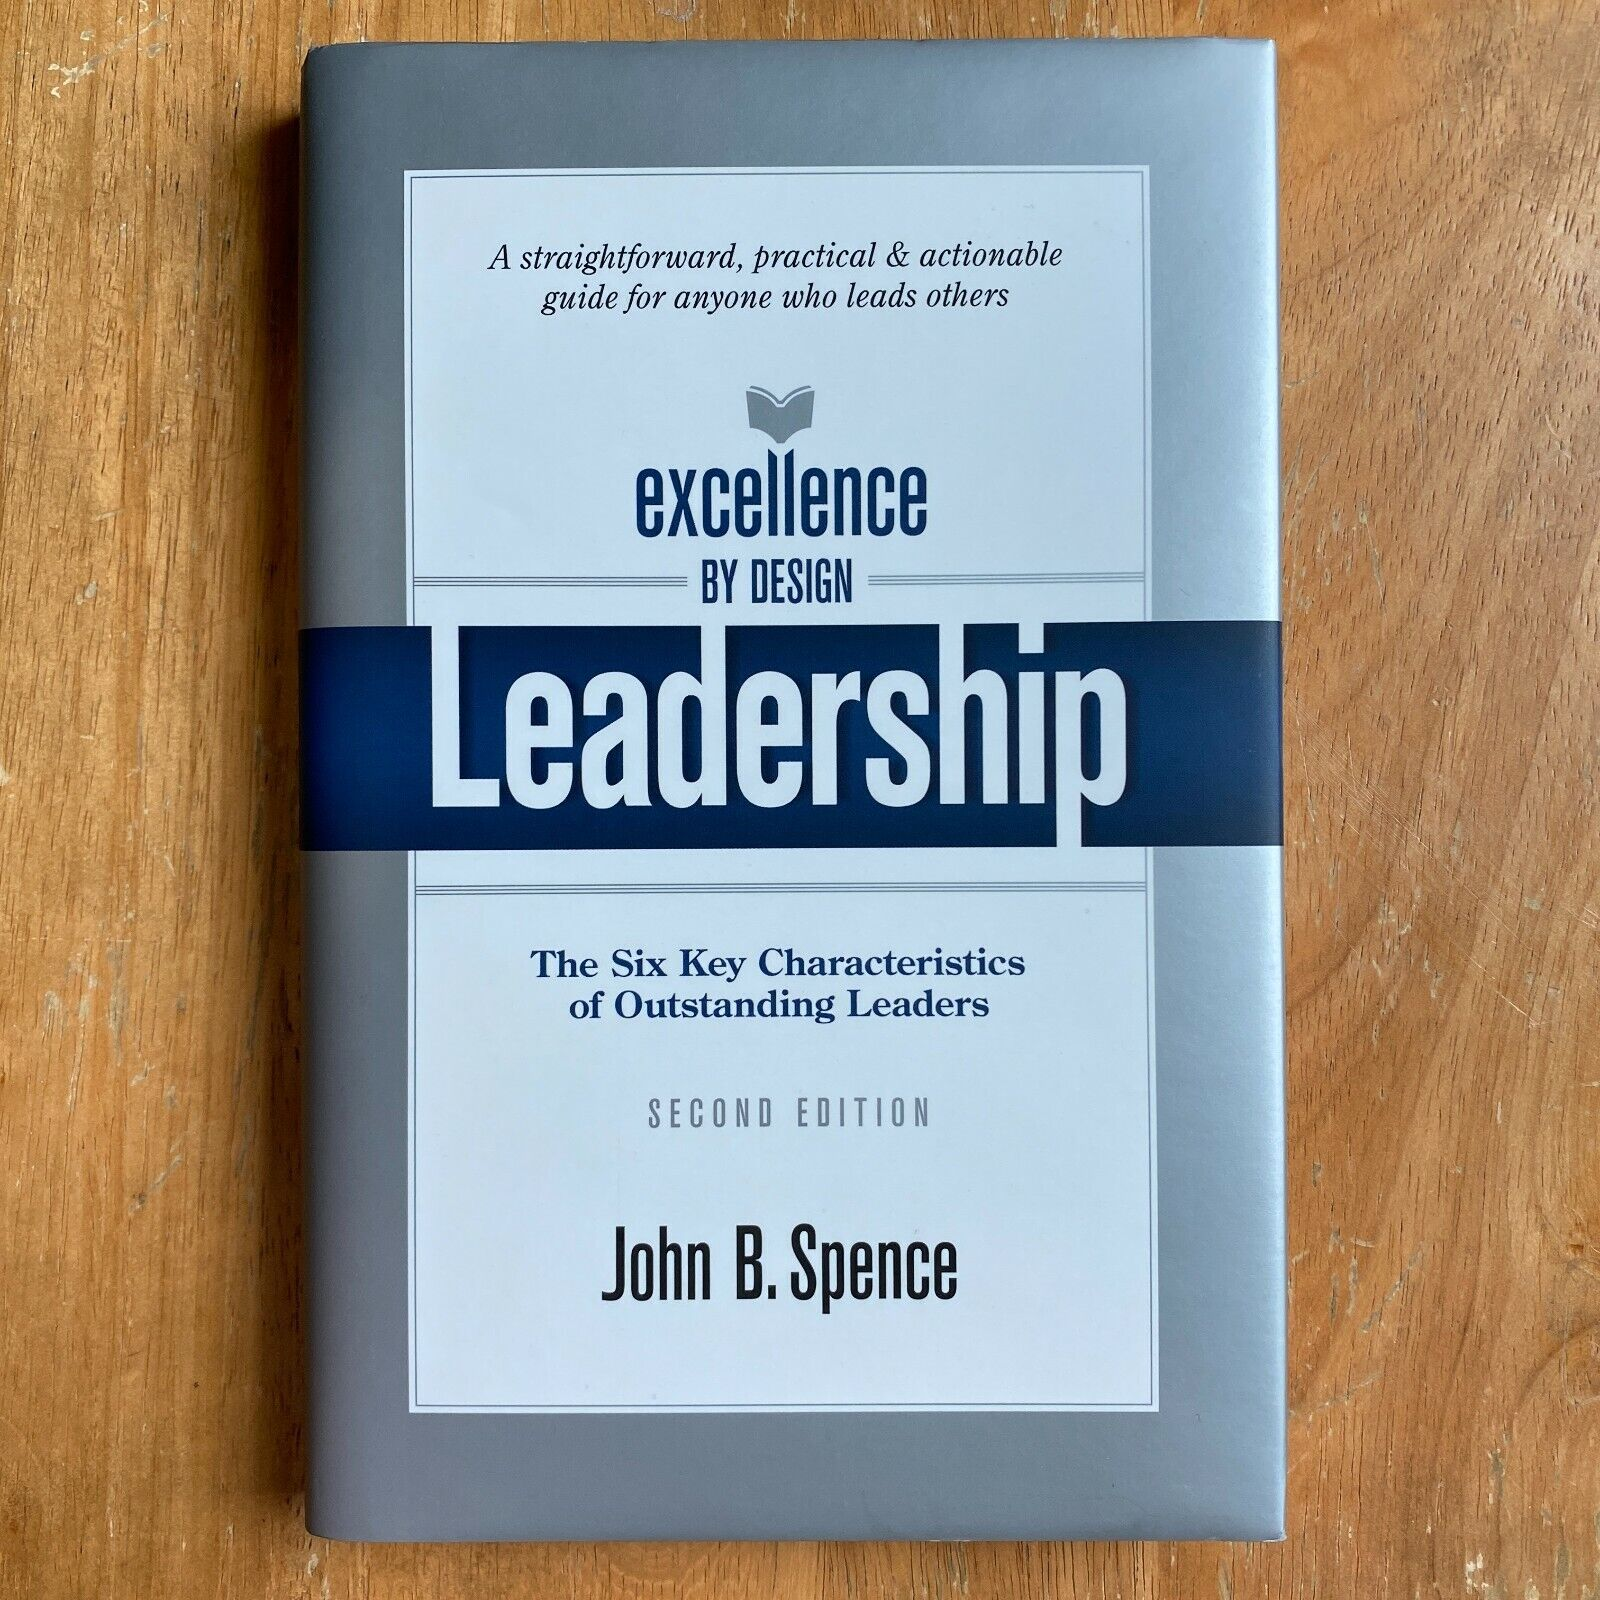 Excellence By Design Leadership Spence, 2008 Hardcover  - $17.99